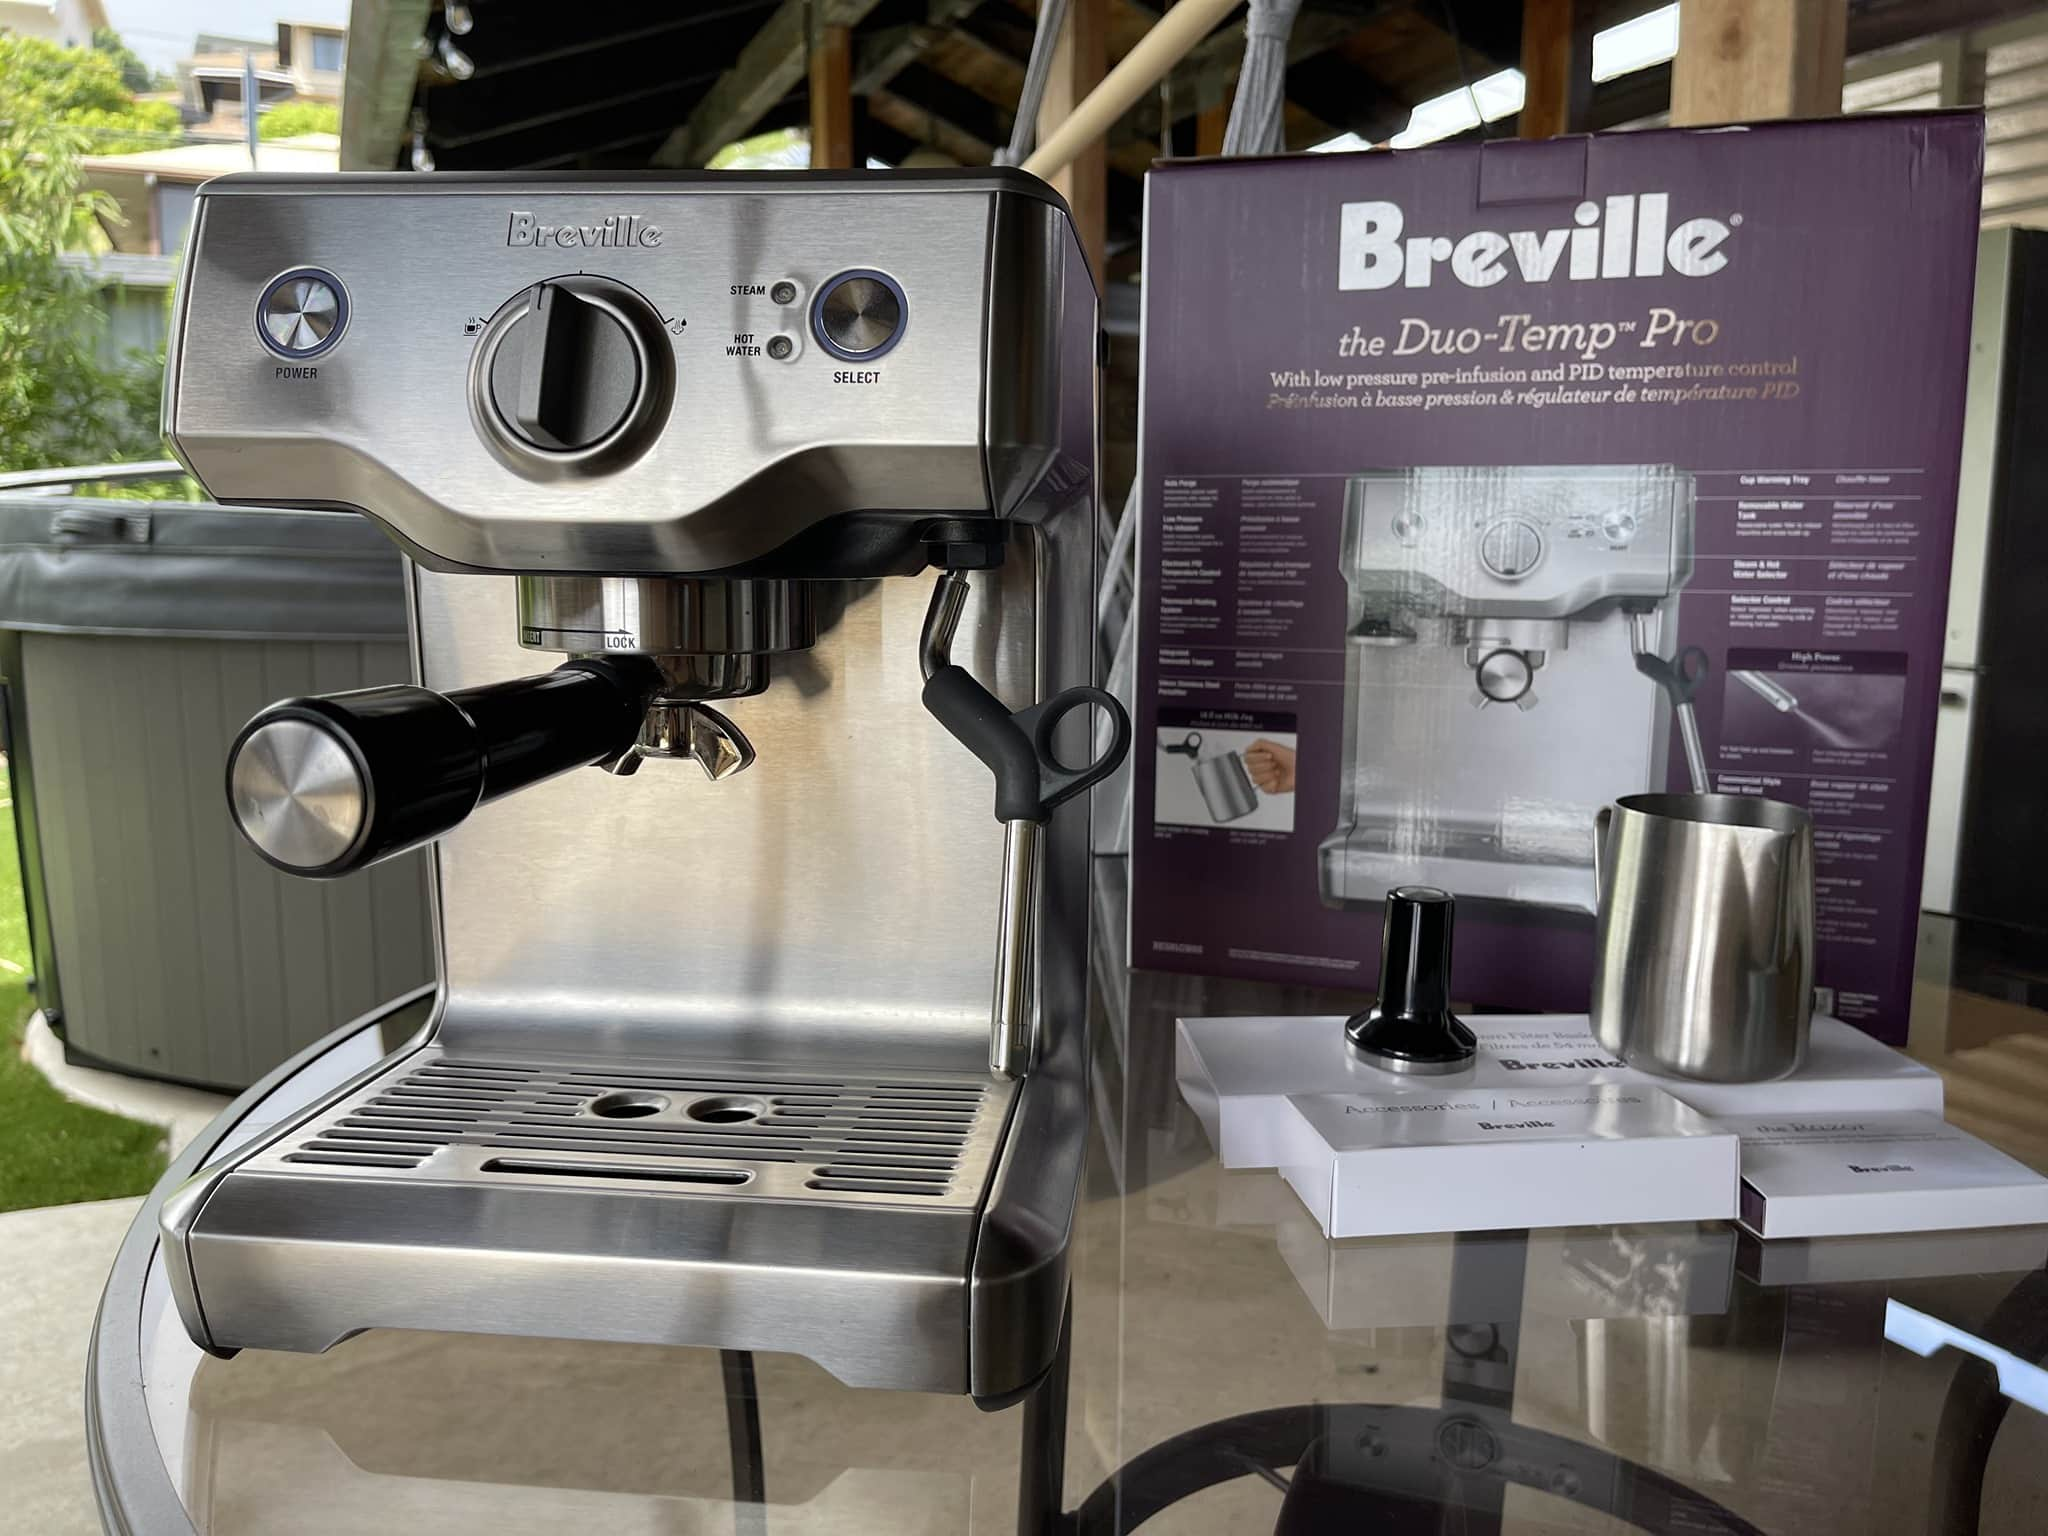 Breville Duo Temp Pro mantains the steam pressure even when there is little water left in the boiler